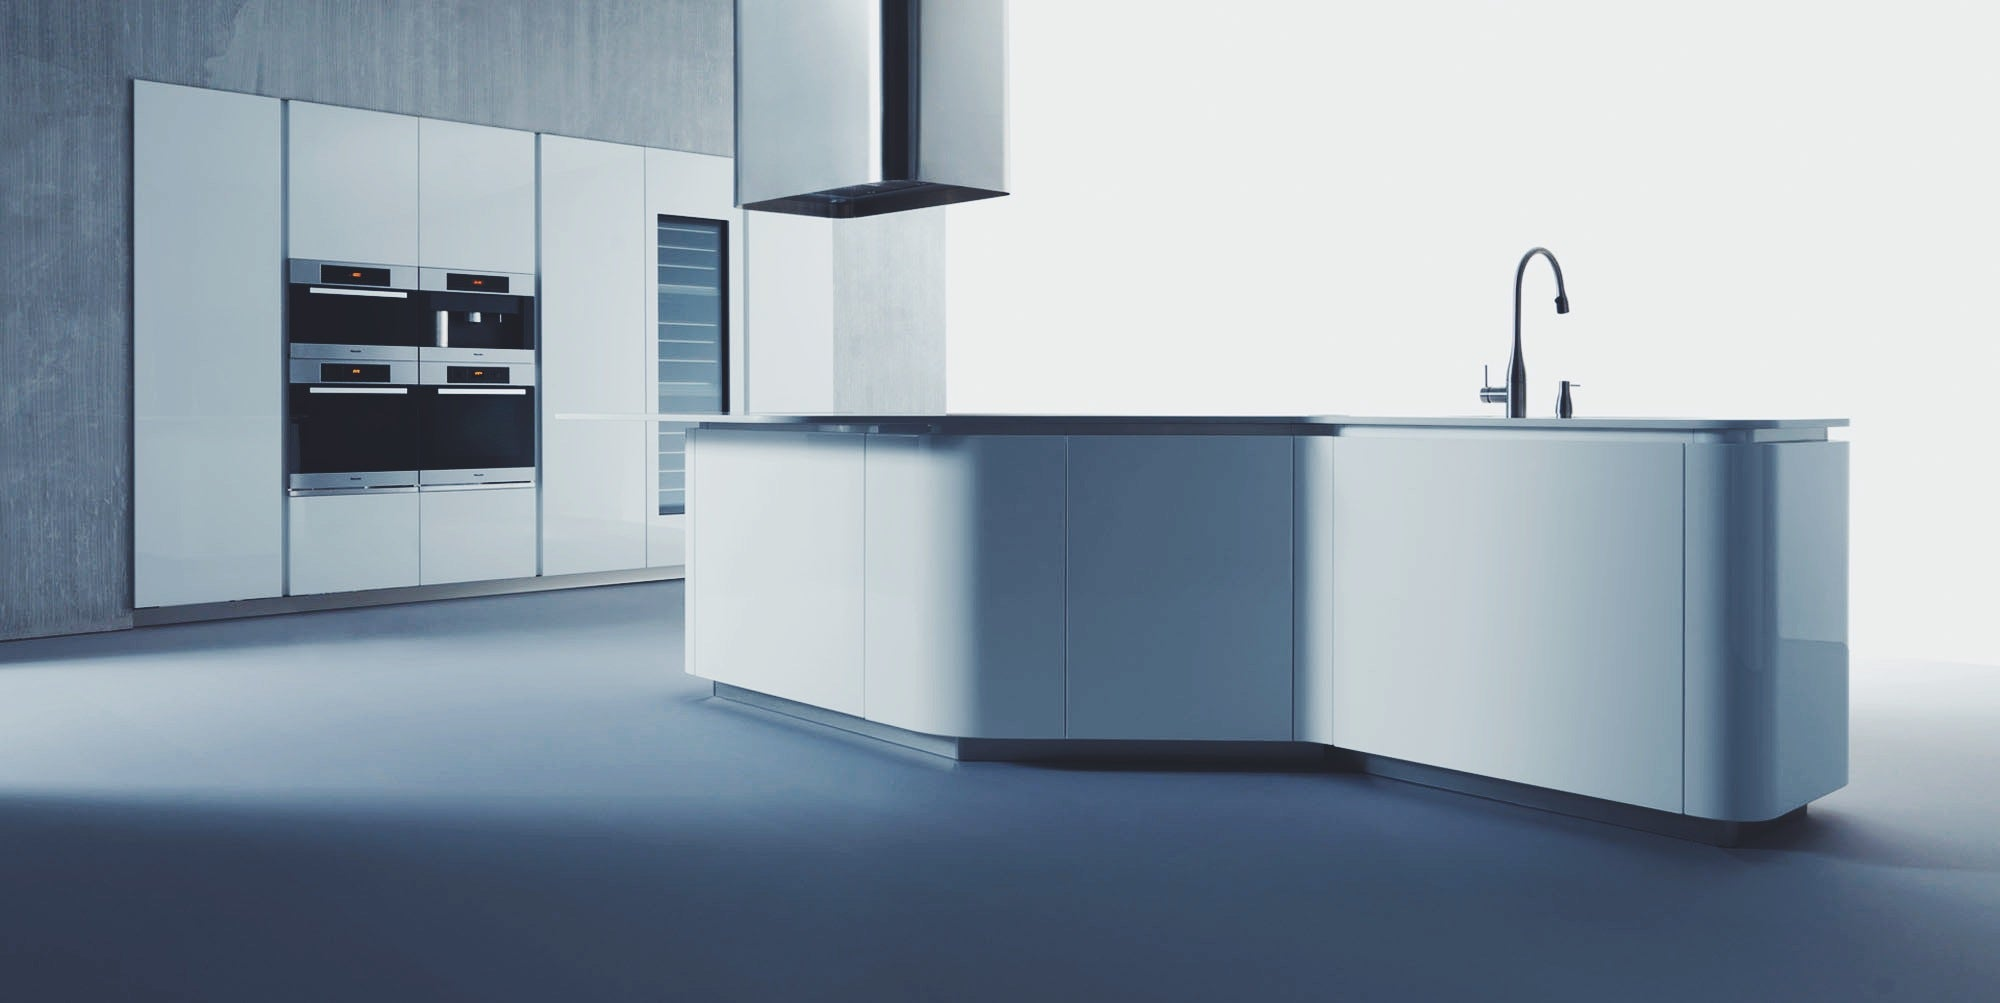 Abitalia South Coast design and install luxury contemporary kitchens in Poole and Bournemouth